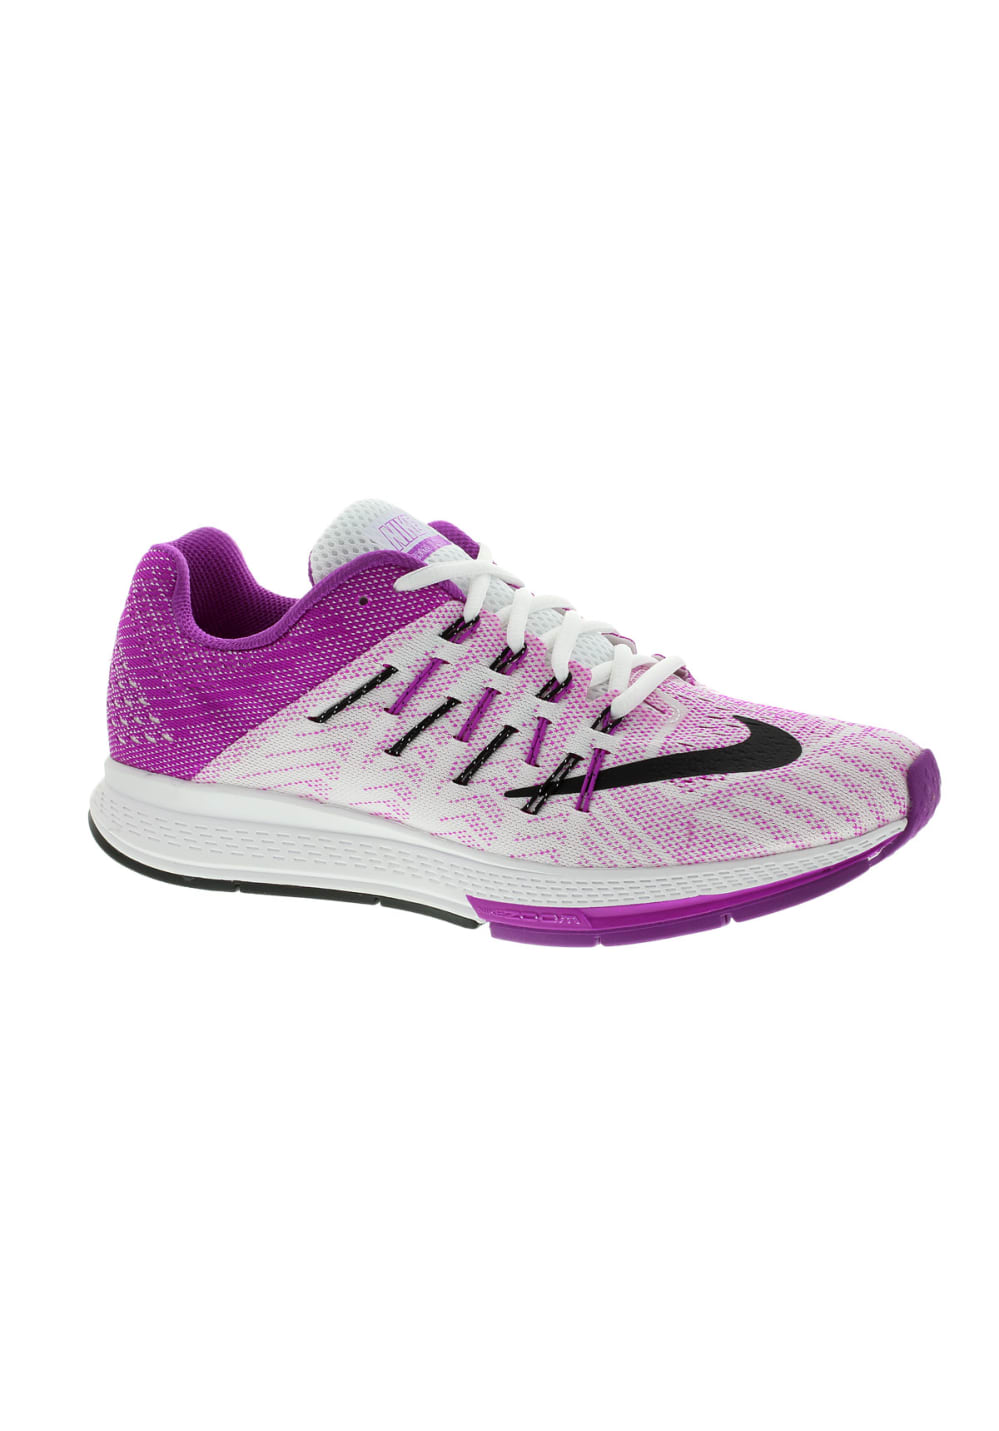 Nike Air Zoom Elite 8 Chaussures running pour Femme Violet